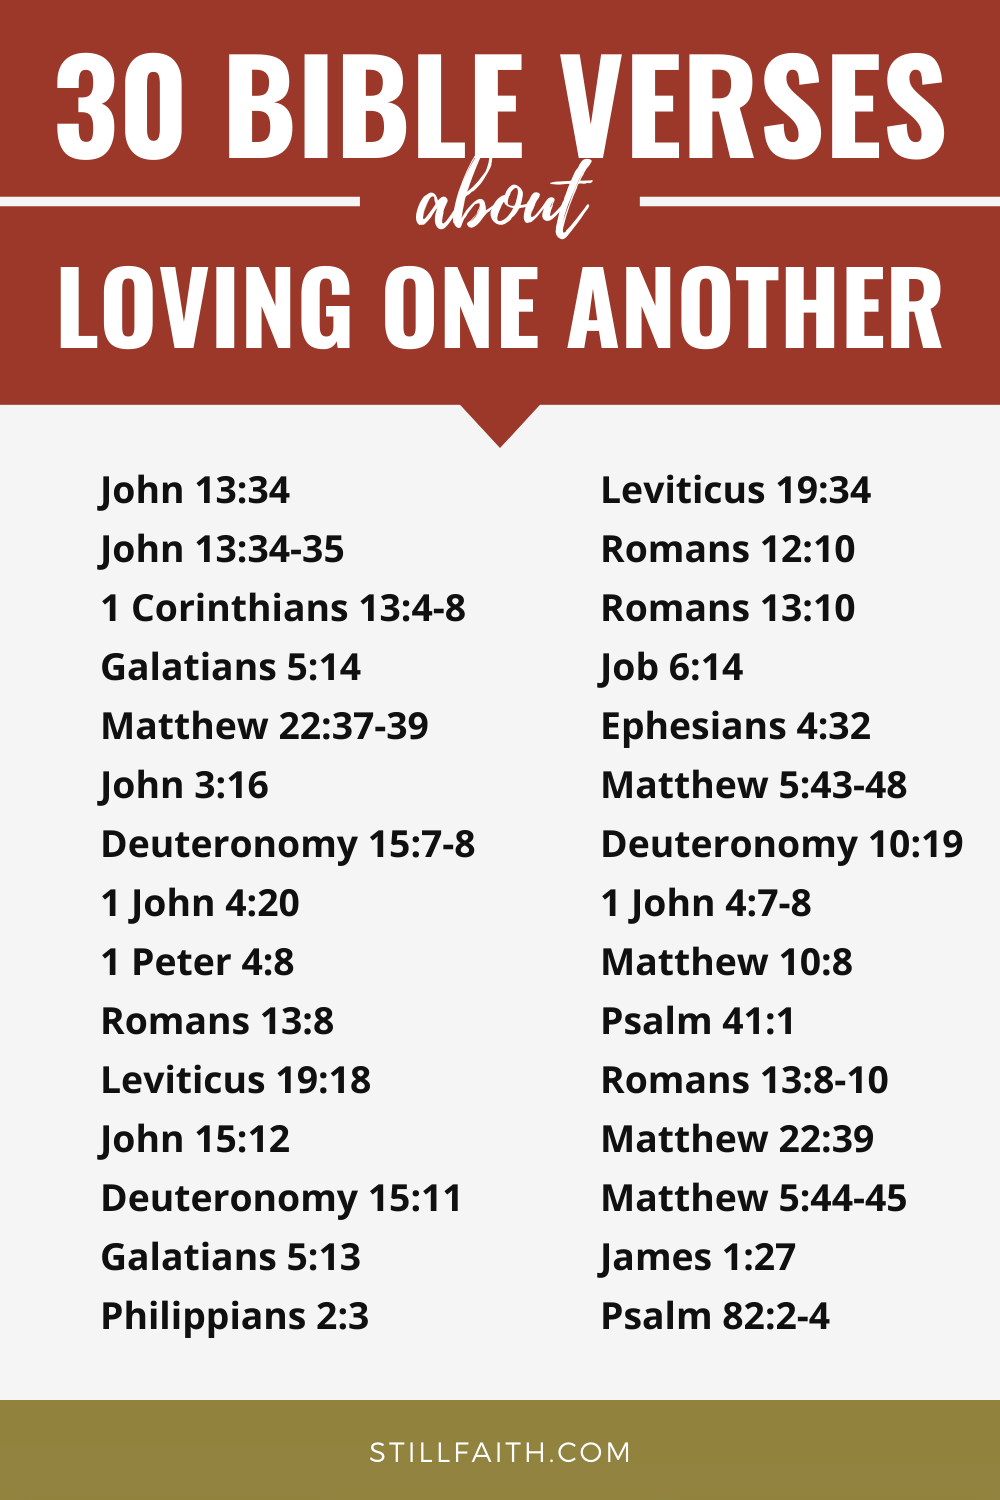 198 Bible Verses about Loving One Another